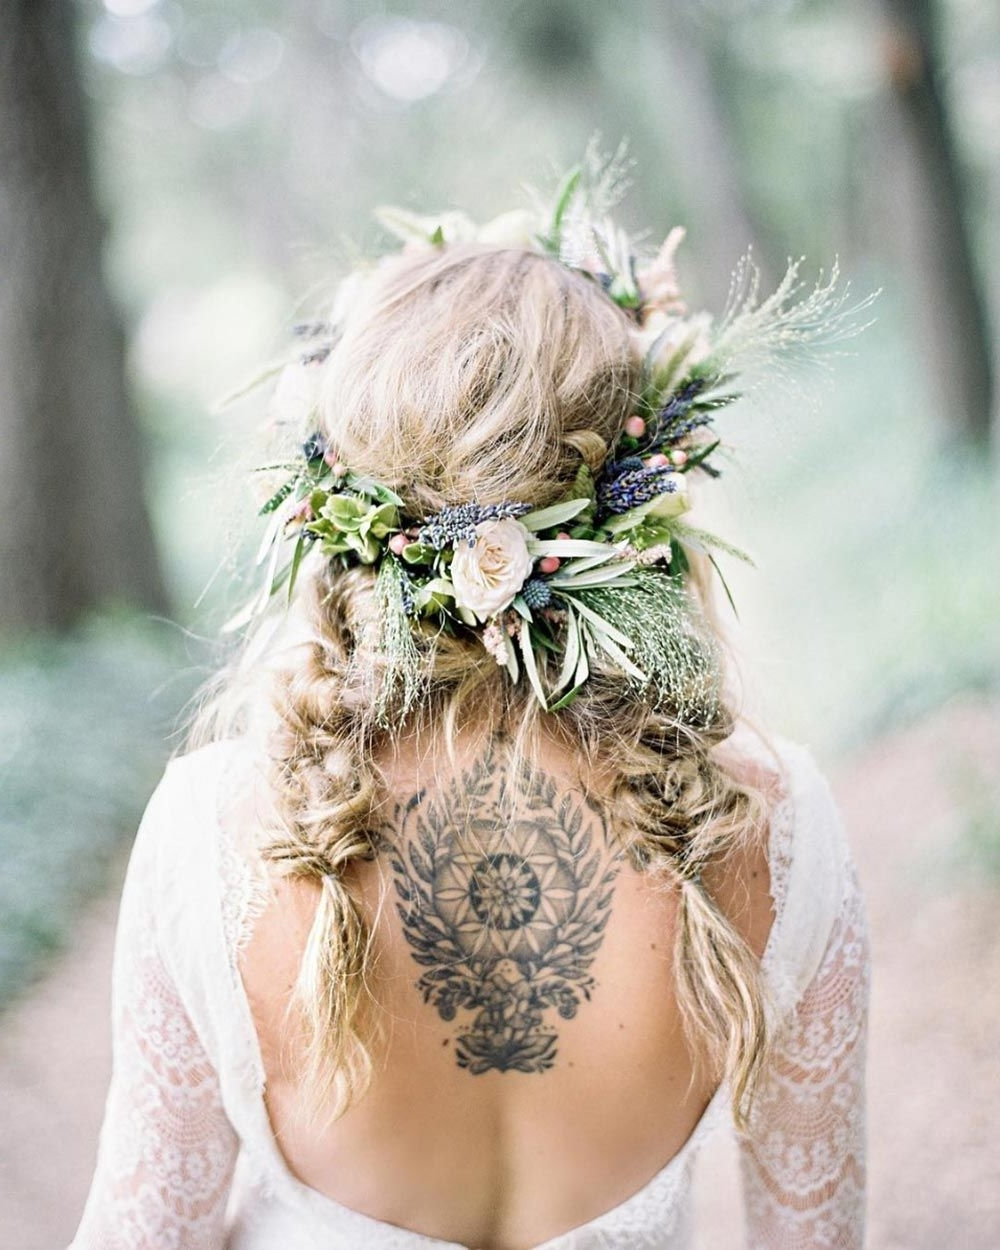 2017 Wedding Hairstyles For Long Boho Hair Inside 28 Braided Wedding Hairstyles For Brides With Long Hair (View 1 of 15)